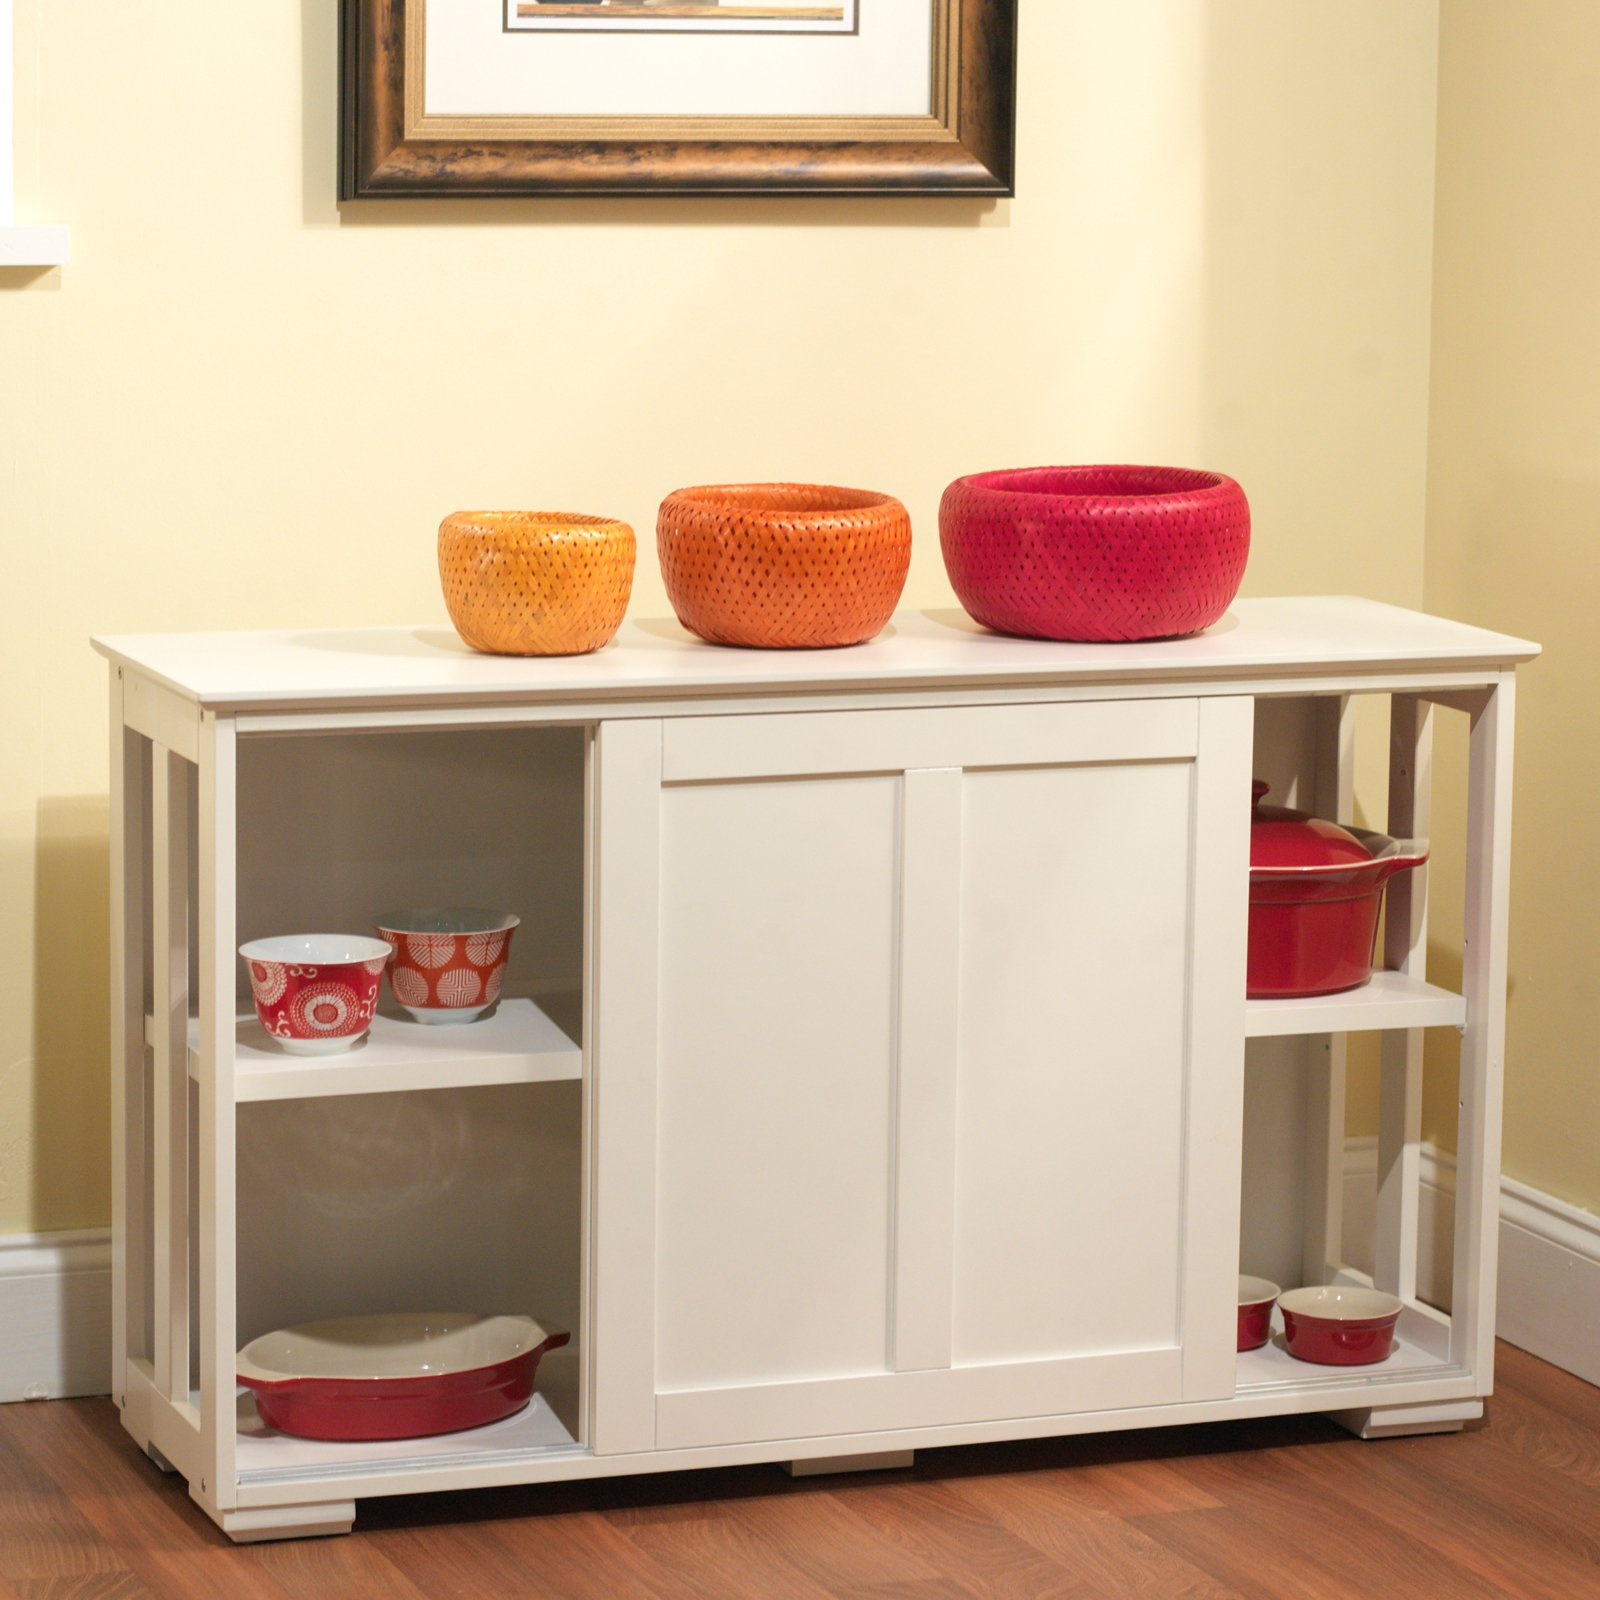 Superieur Sliding Wood Doors Stackable Storage Cabinet, Multiple Colors   Walmart.com